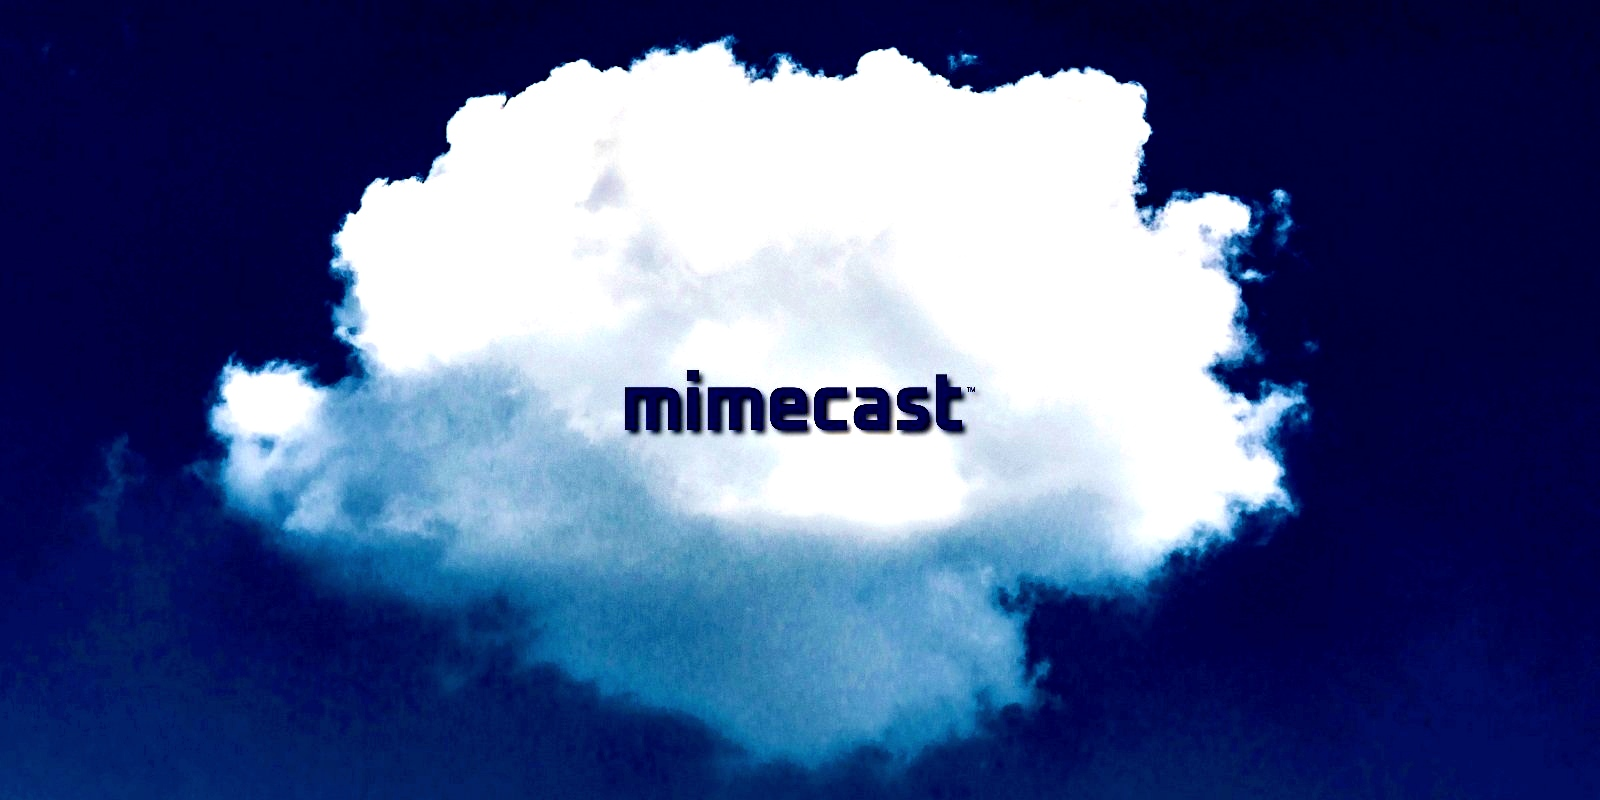 Mimecast: SolarWinds hackers used Sunburst malware for initial intrusion